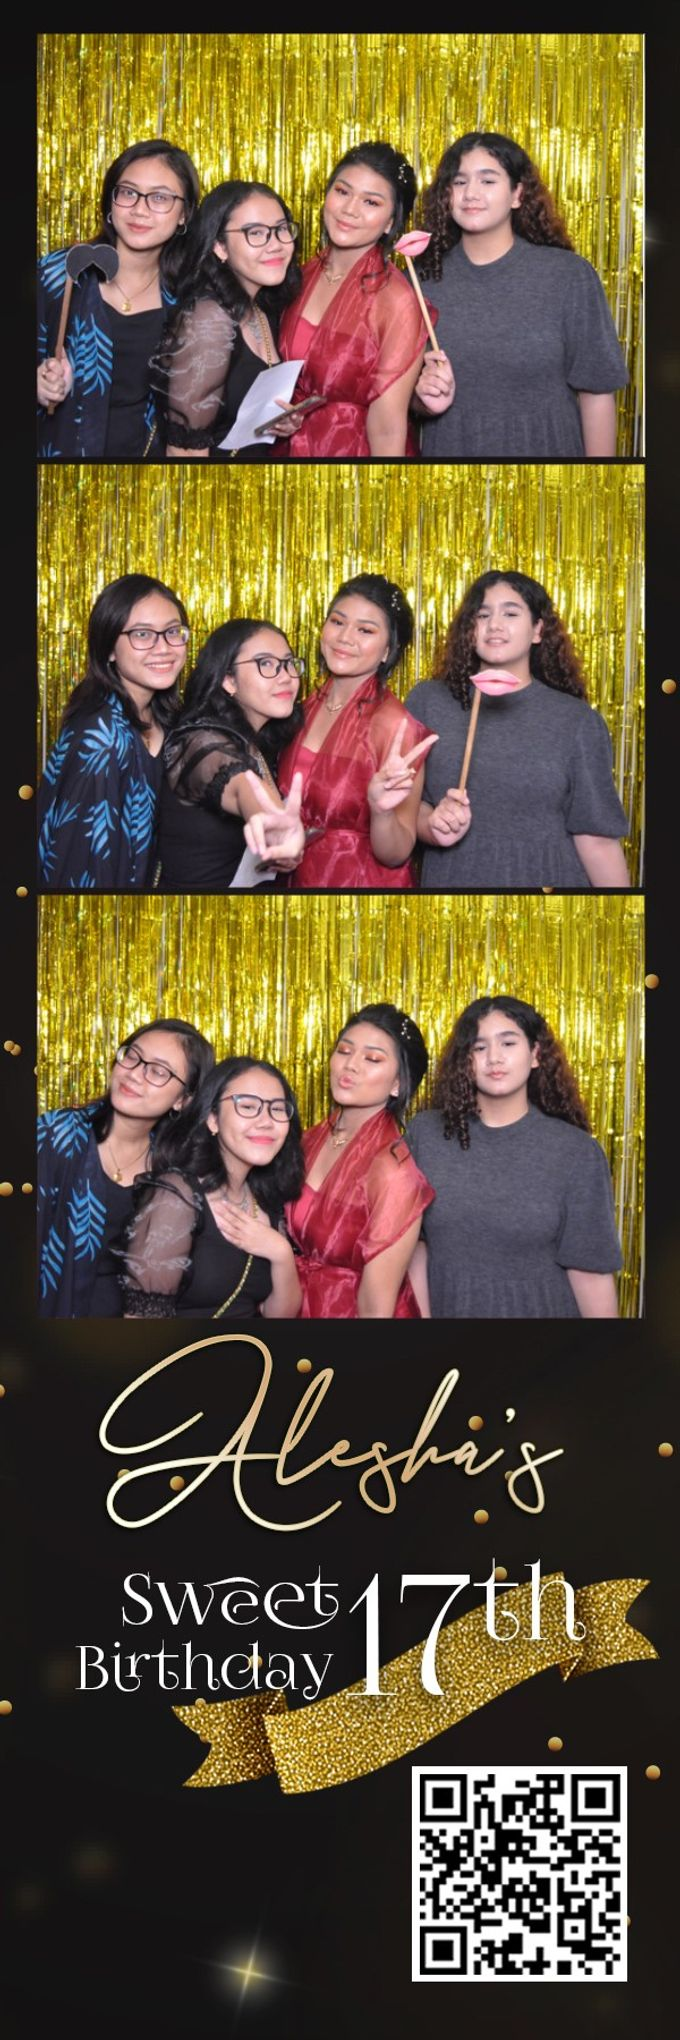 SRIPE PHOTOBOOTH by Picto Booth - 009